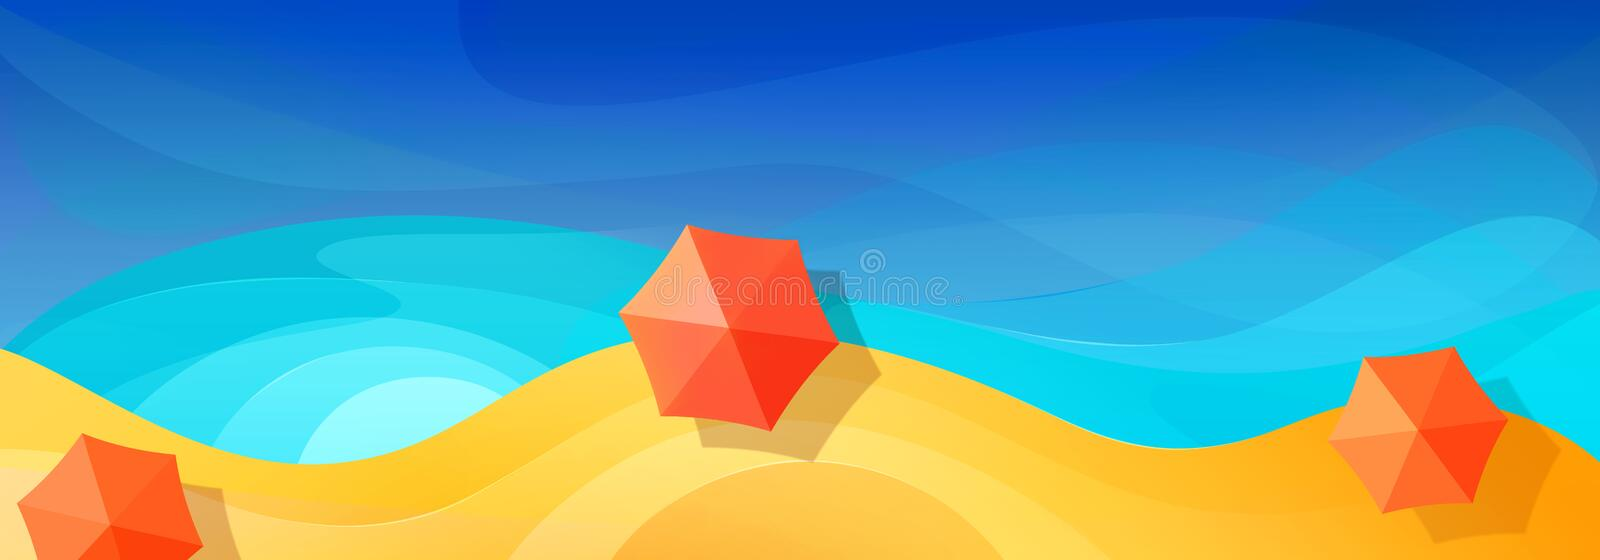 Summer abstract vacation background. Multicolored beach umbrellas paradise beach. Blue sea. Top view. Banner design. Summer abstract vacation background stock illustration